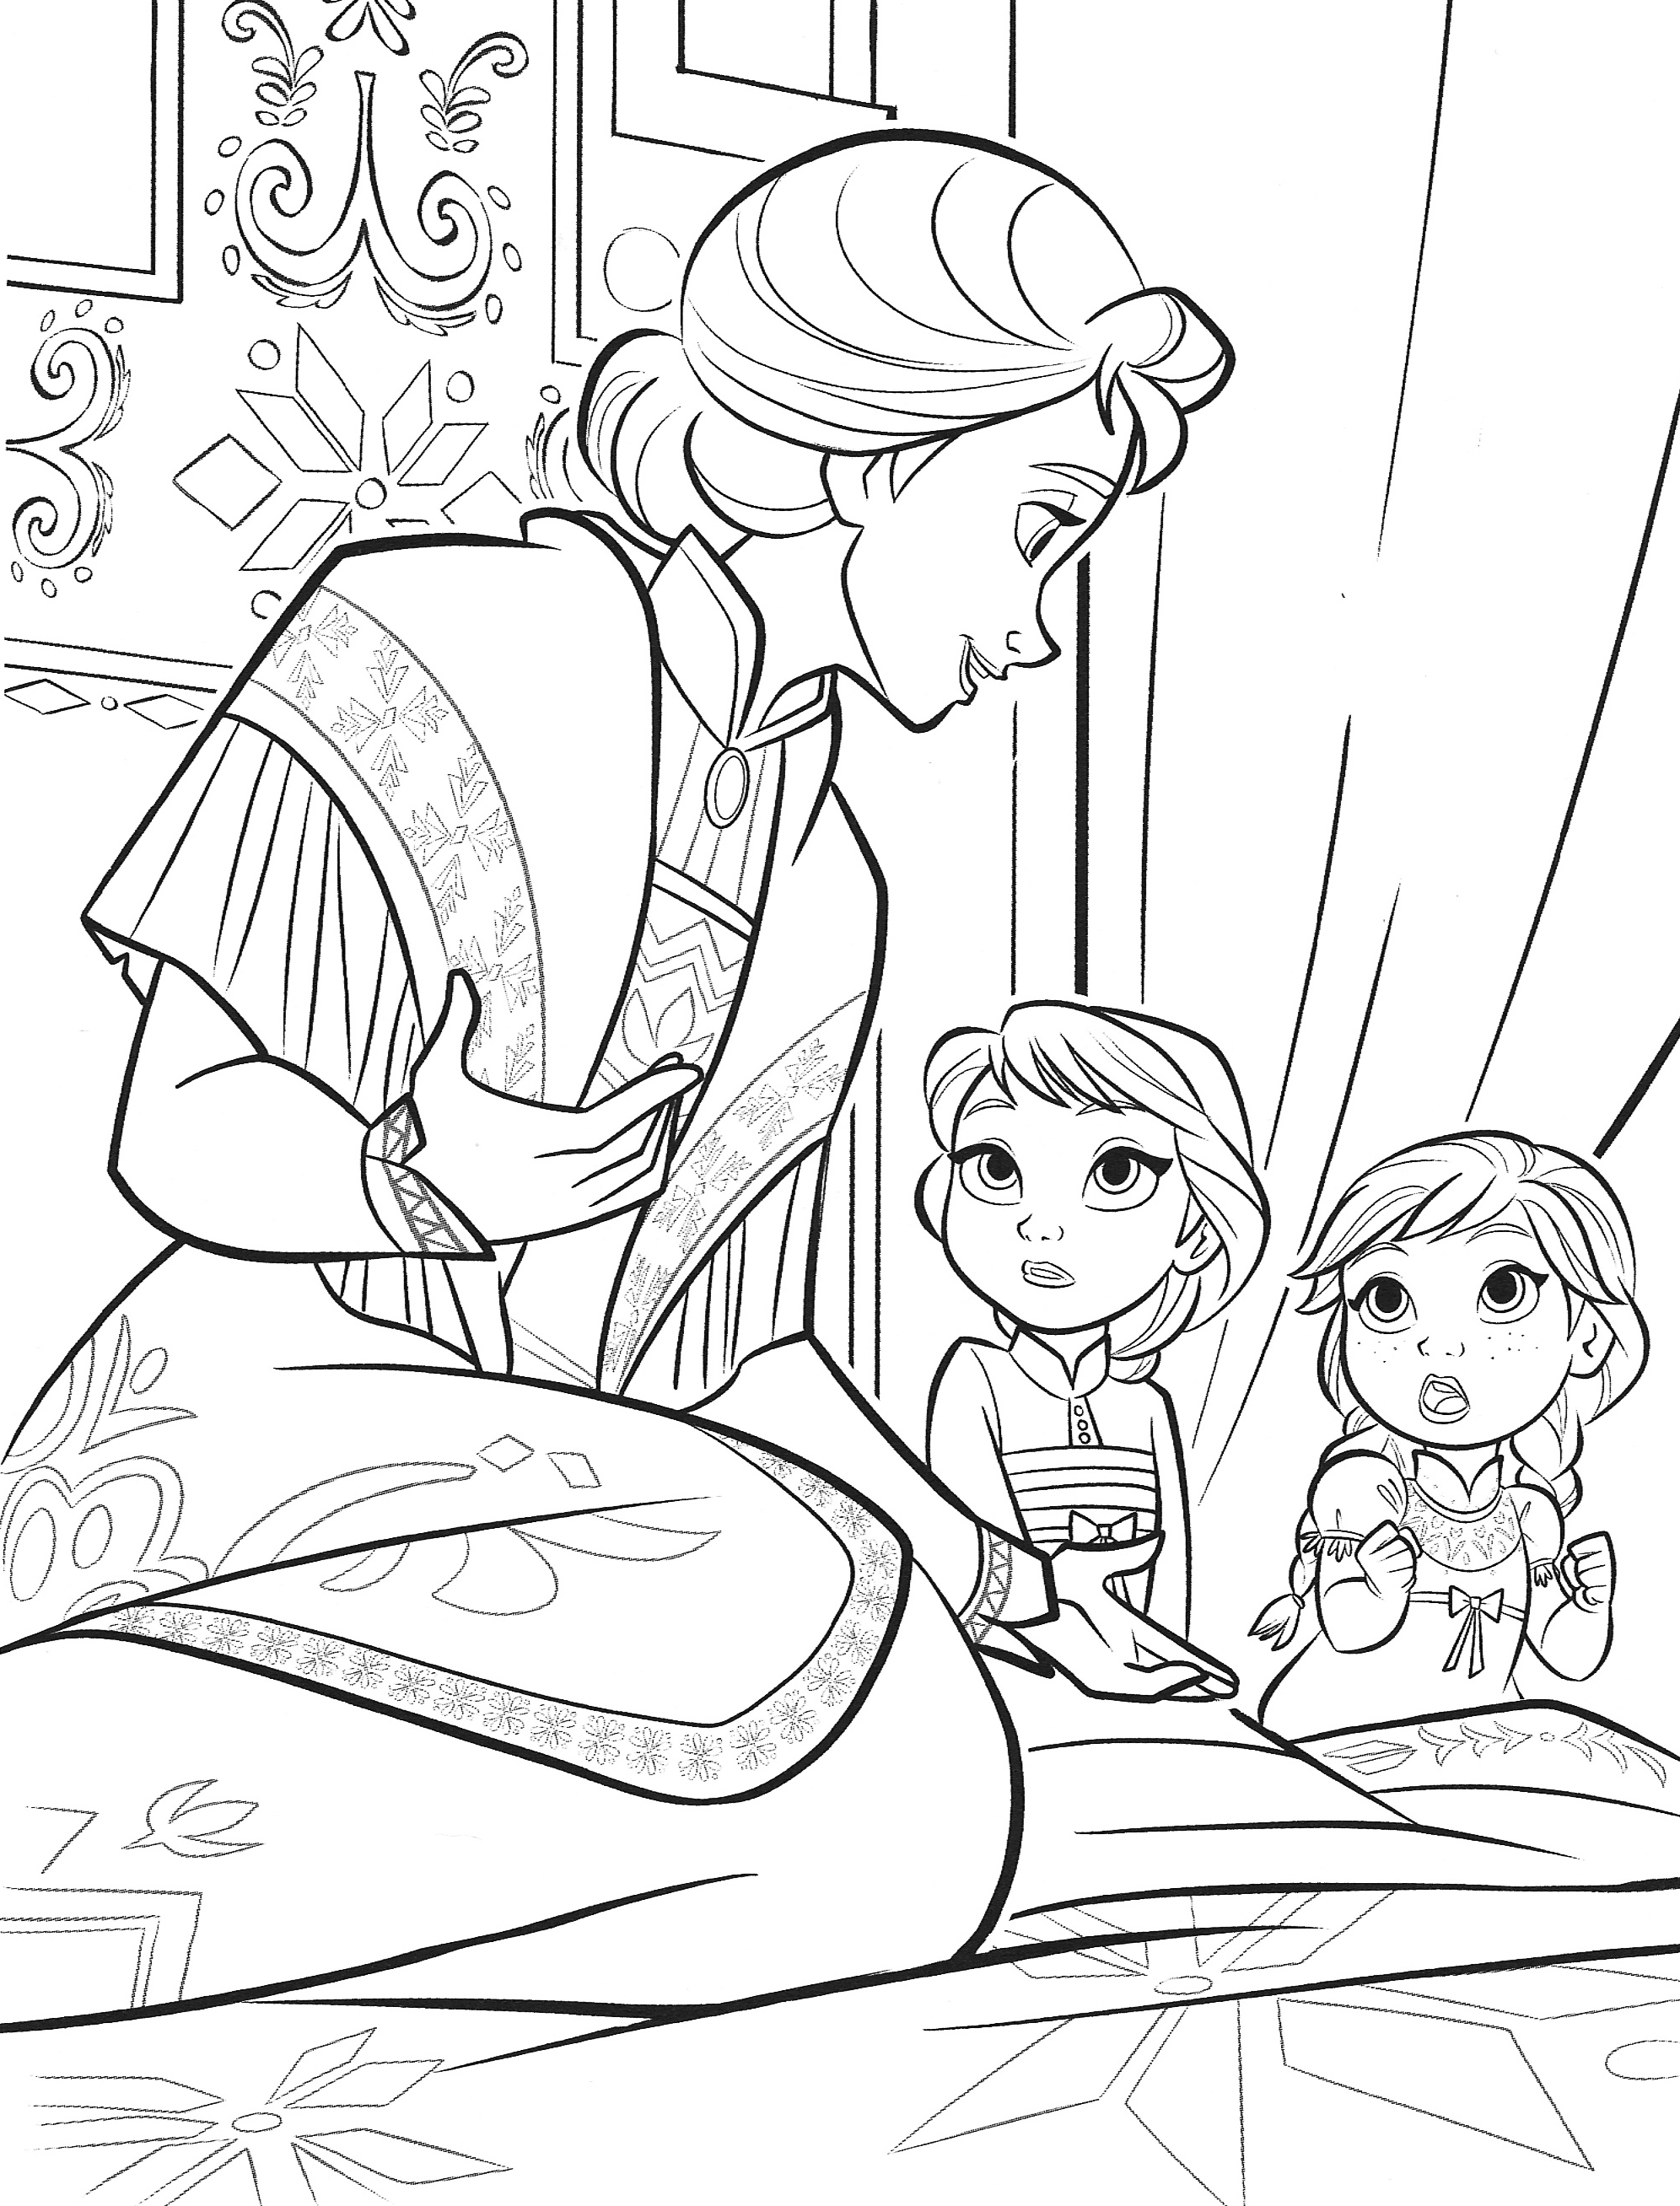 Frozen 2 Elsa and Anna coloring pages - YouLoveIt.com